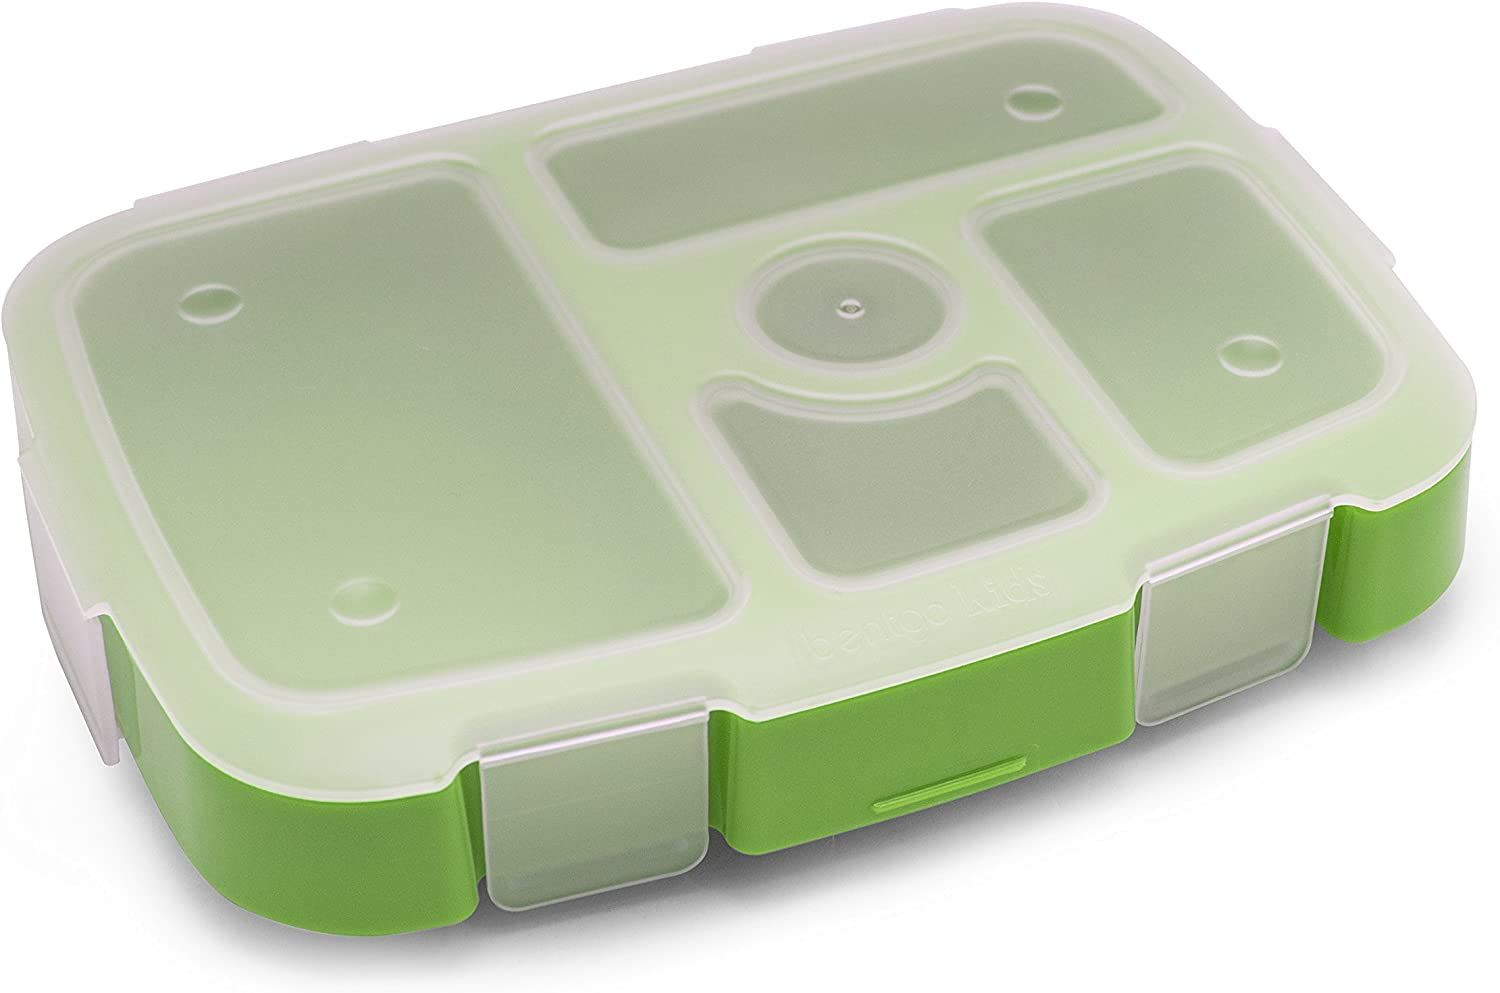 Bentgo Kids Tray (Green) with Transparent Cover for At-Home Meals, Lunch Meal Prep, and More